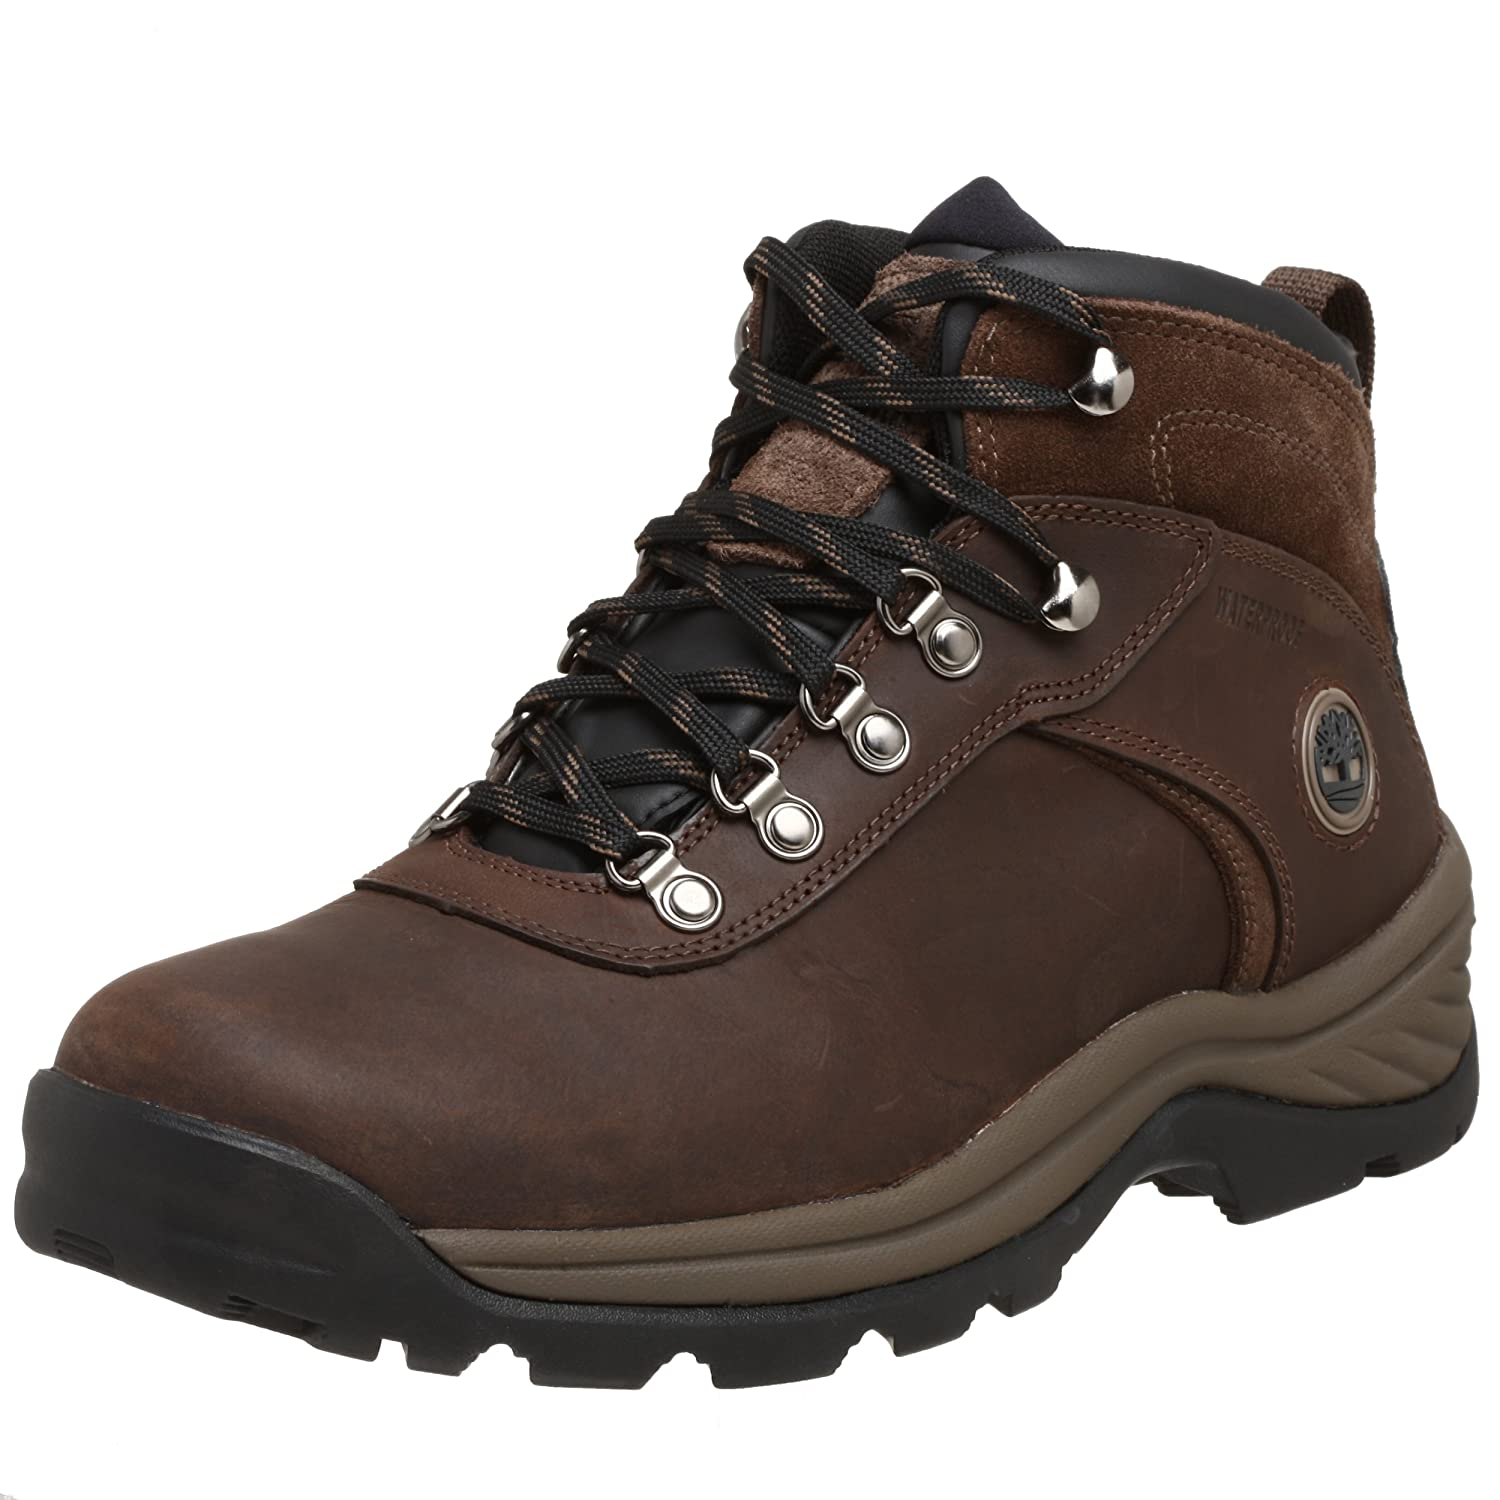 Timberland Men's 18128 Flume Boot,Dark Brown,9.5 W US 40% OFF